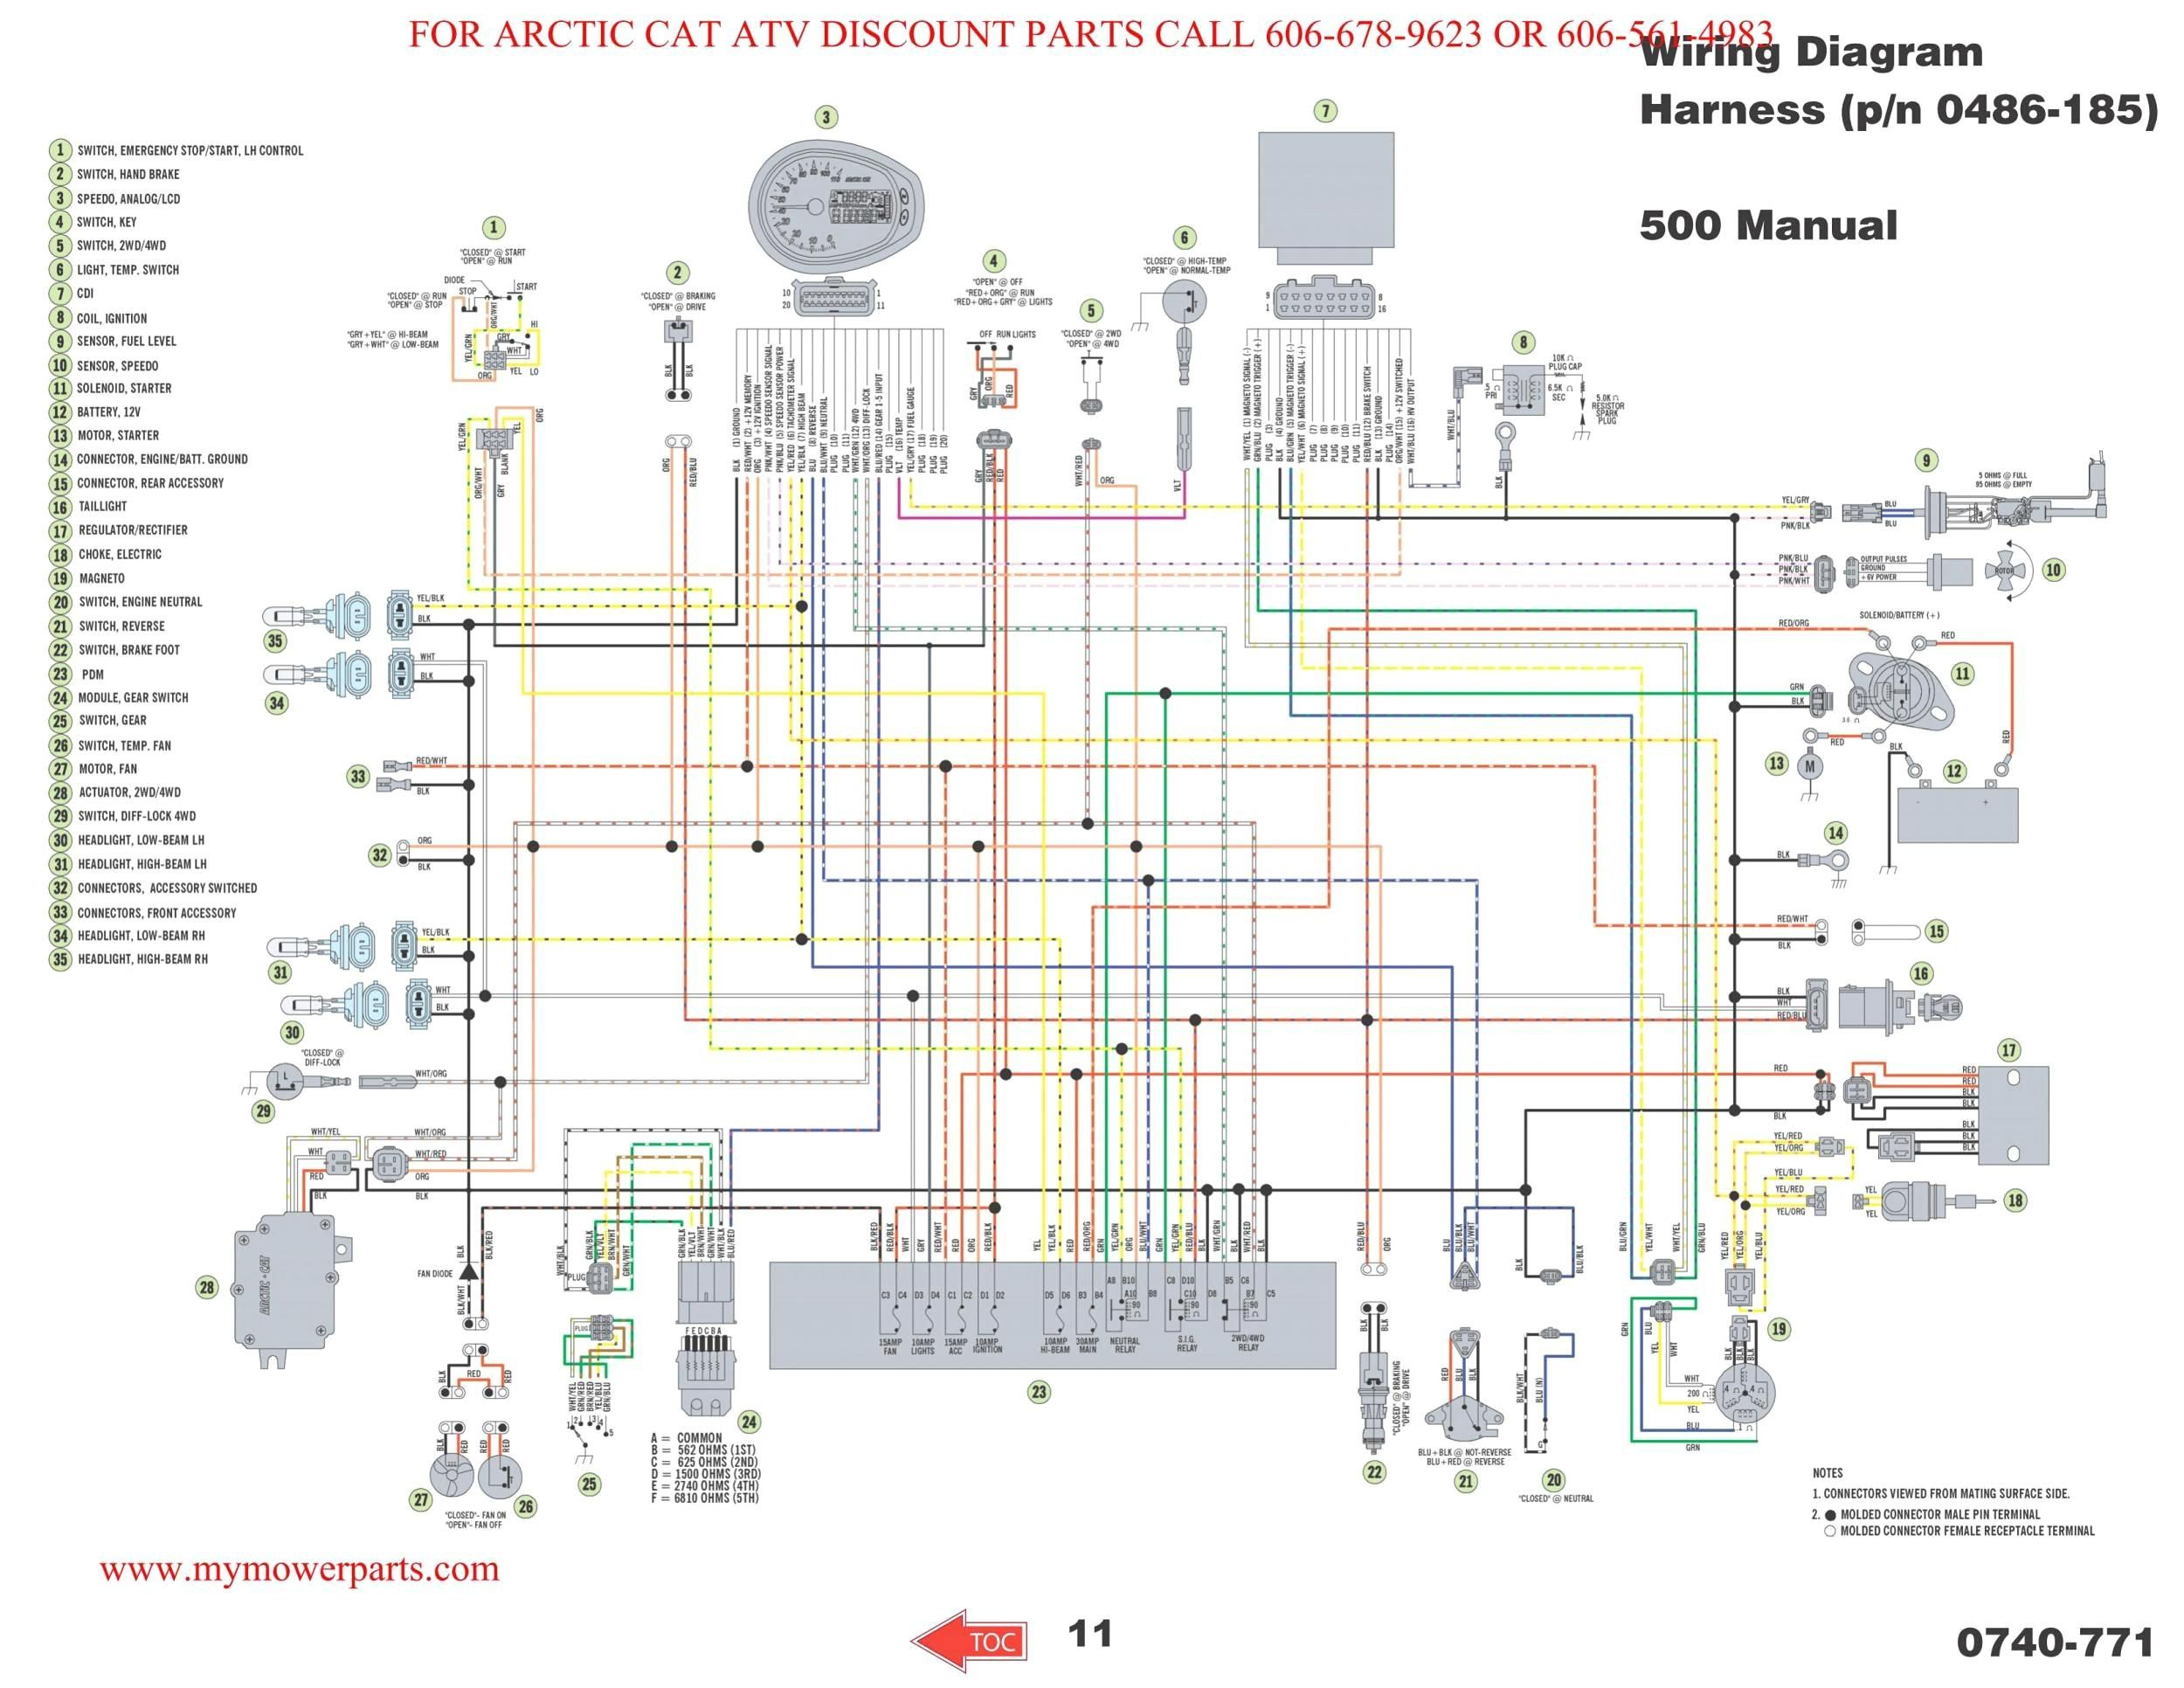 Polaris Predator 500 Wiring Diagram For Polaris Ranger Diagram Ranger